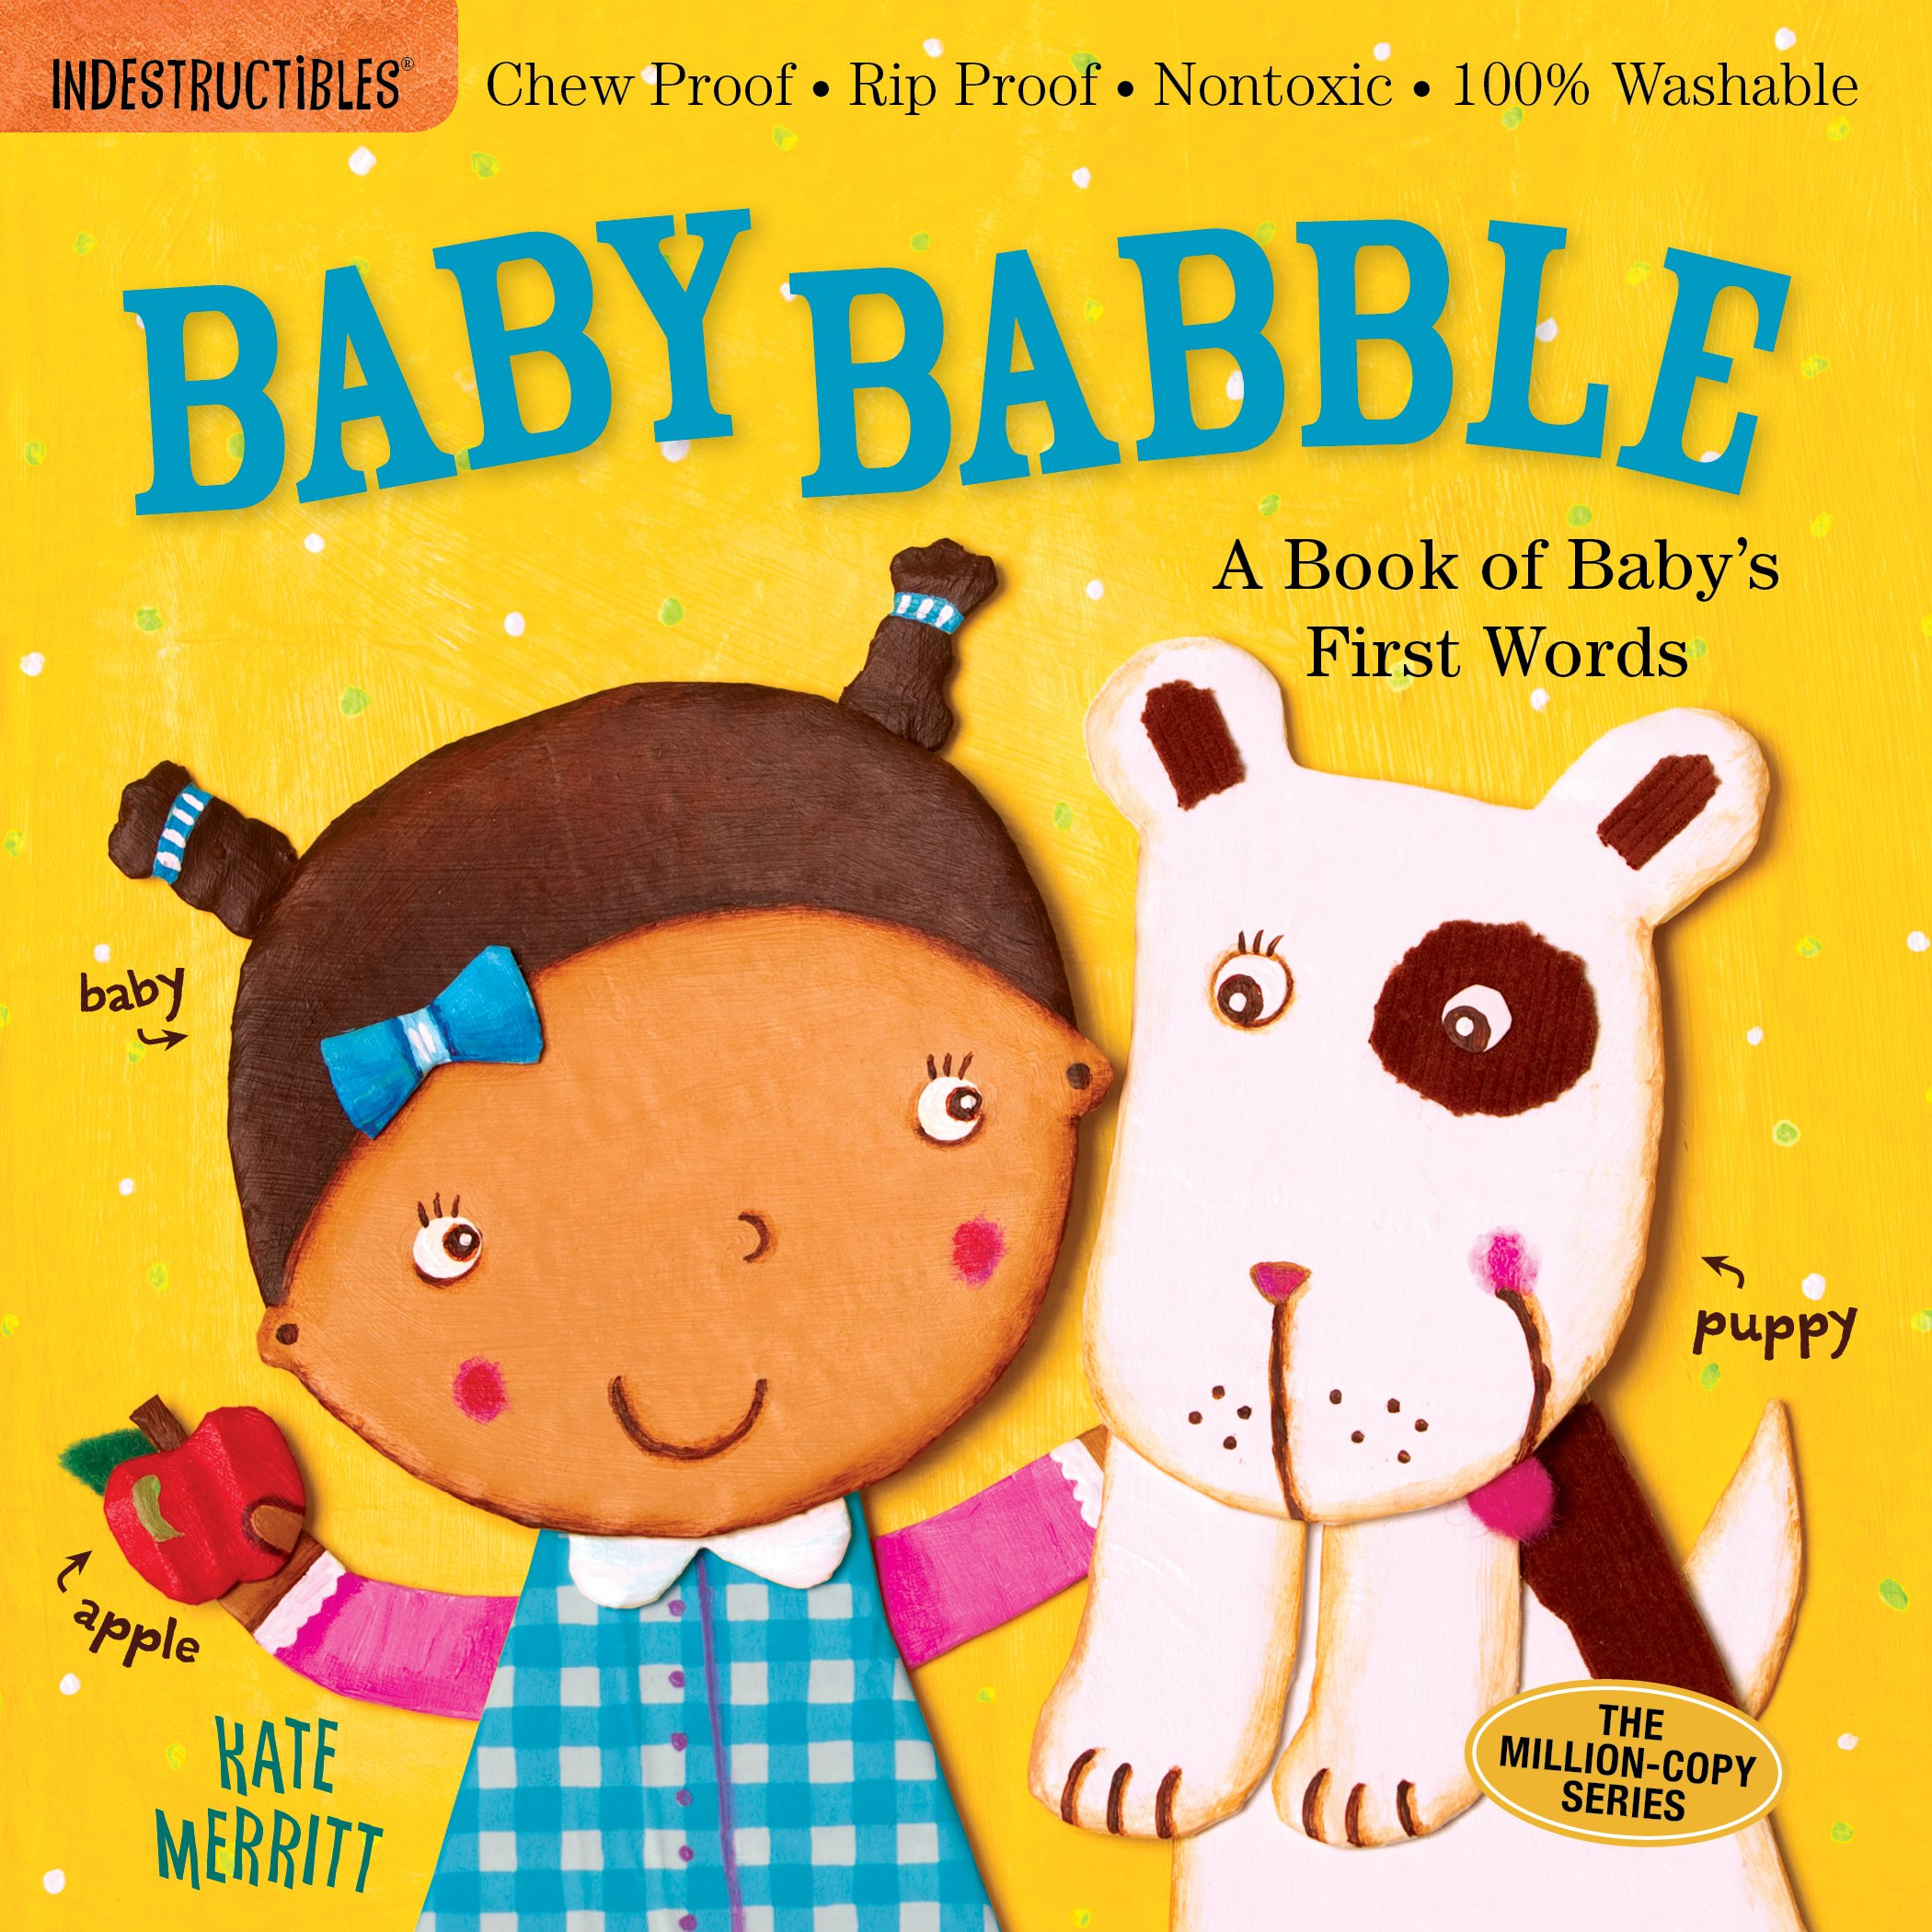 Amazon Indestructibles Baby Babble Amy